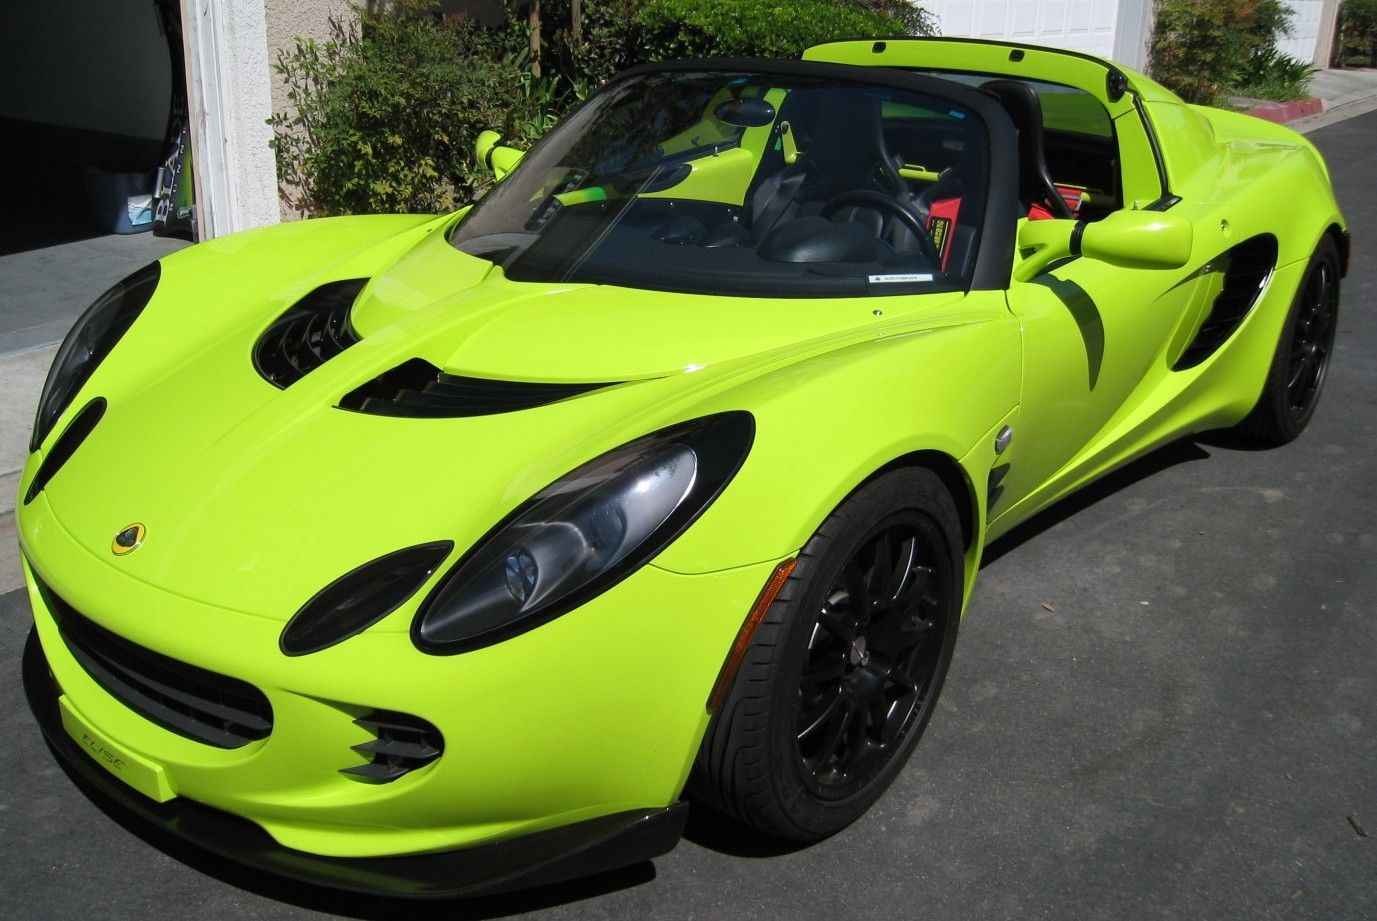 2017 Lotus Elise Lime Green The Only Car That Could Look Luxurious In